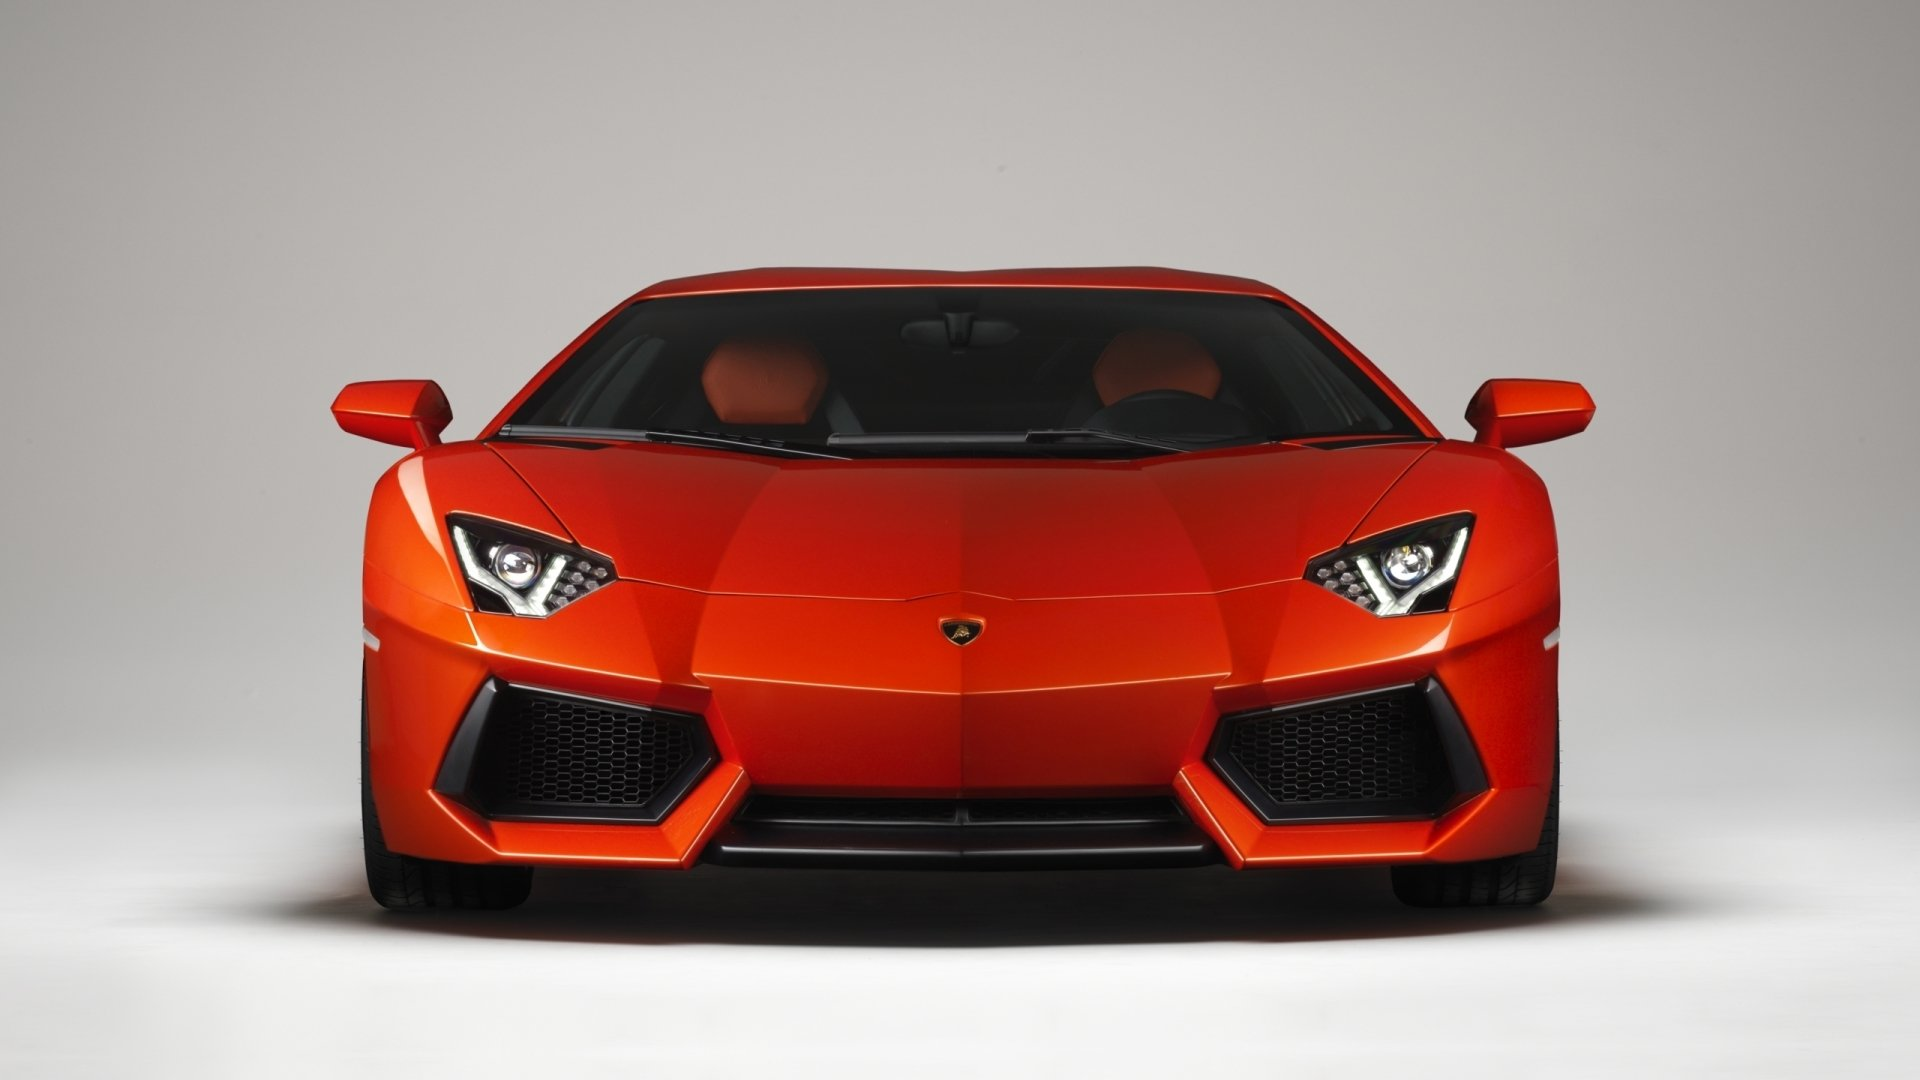 Vehicles - Lamborghini Aventador LP 700-4  Vehicle Car Orange Car Supercar Lamborghini Lamborghini Aventador Lamborghini Aventador LP700-4 Wallpaper